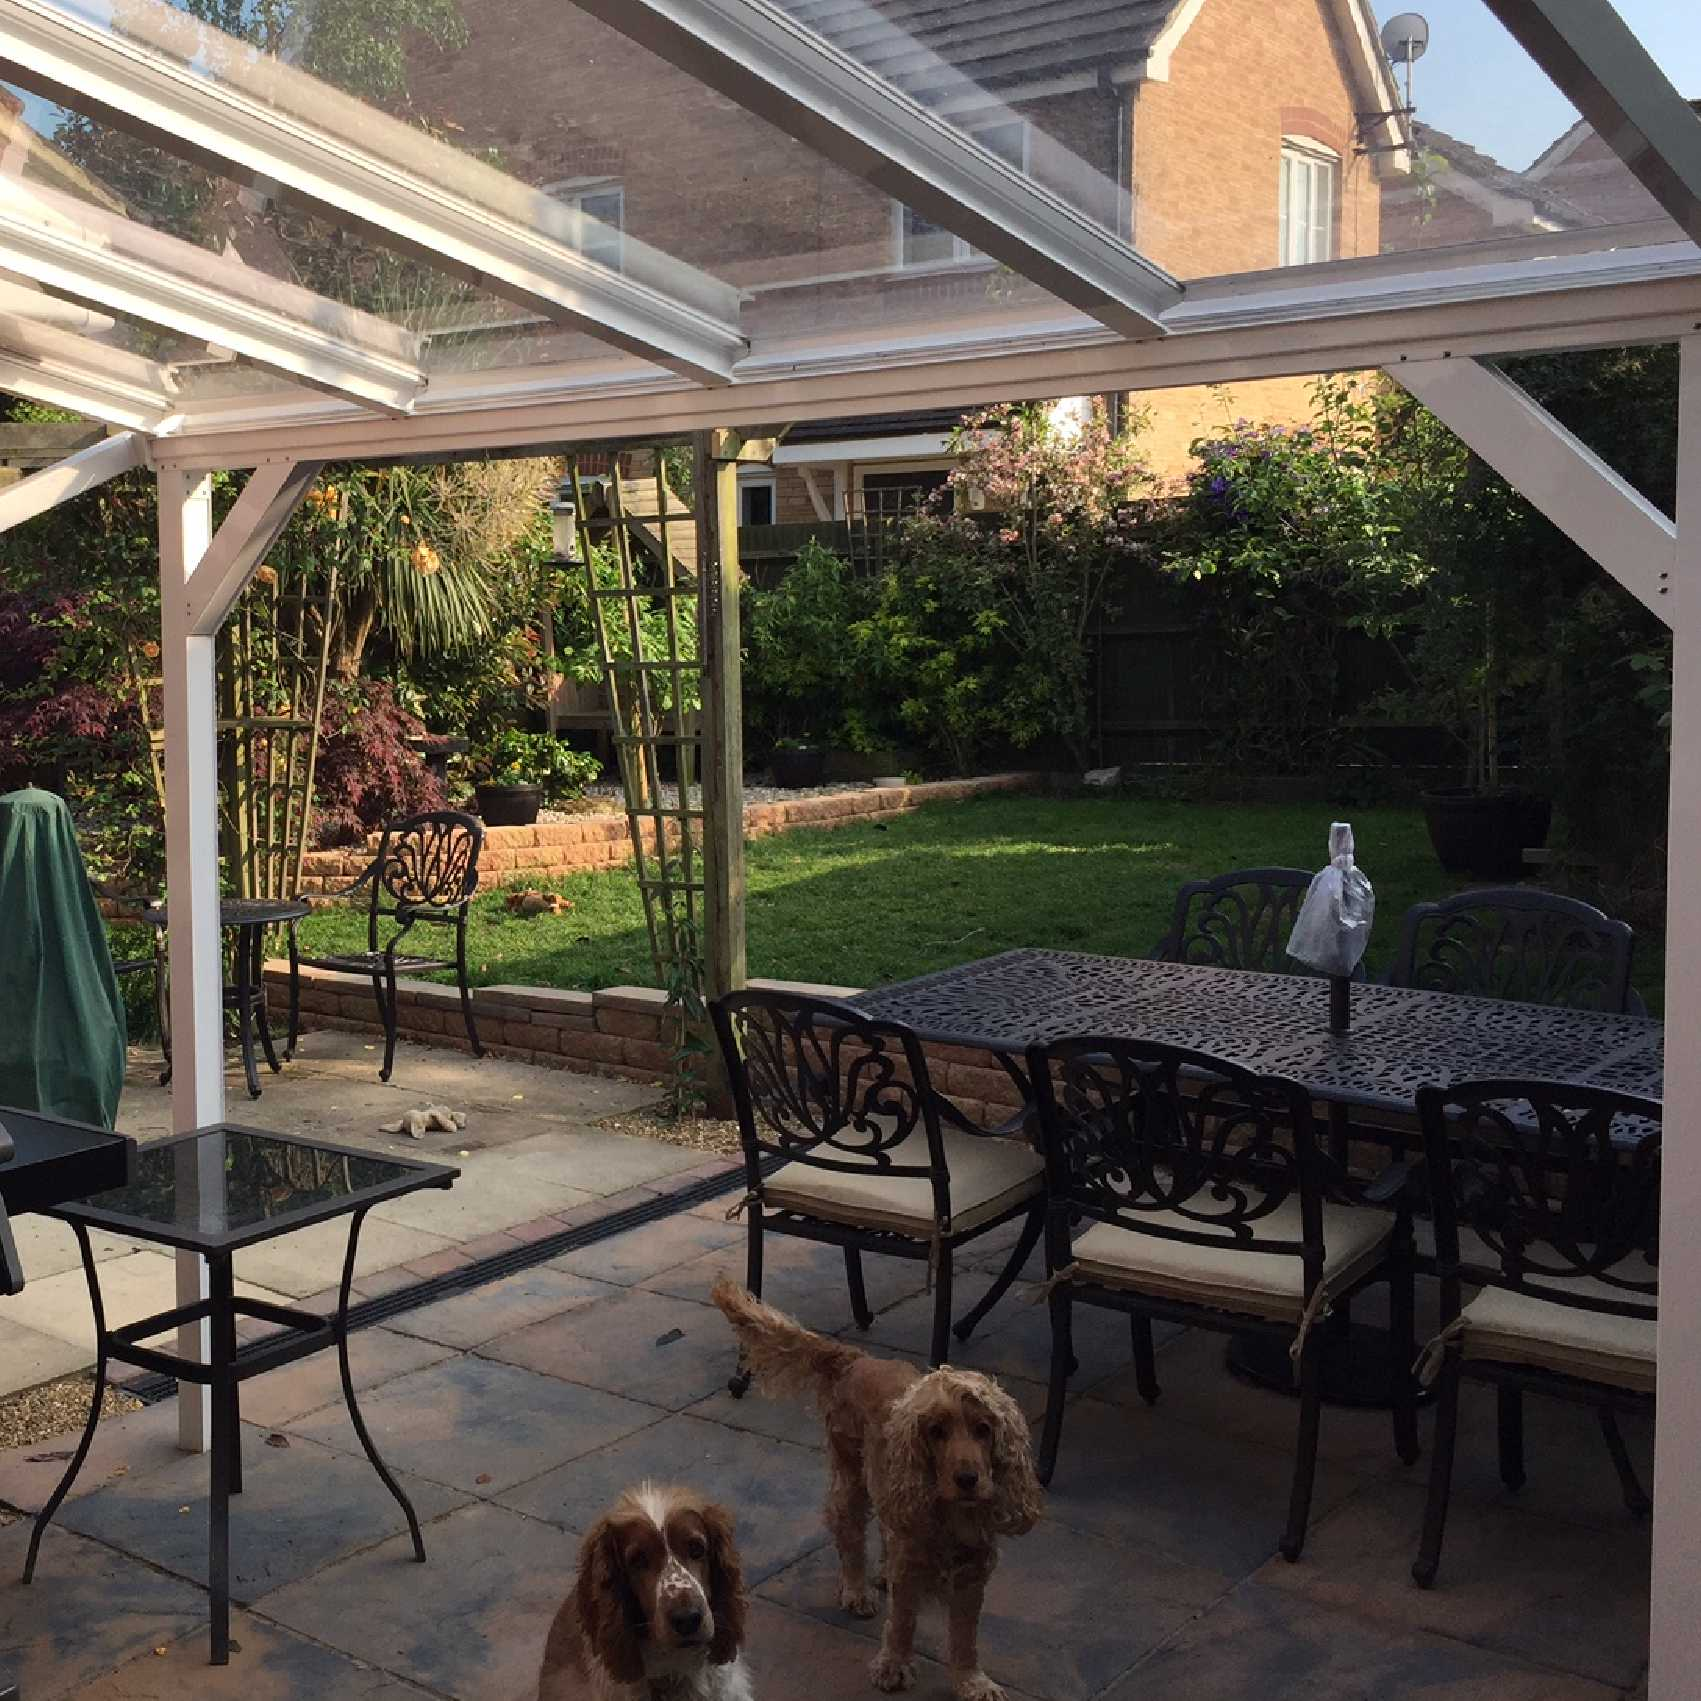 Affordable Omega Smart White Lean-To Canopy with 6mm Glass Clear Plate Polycarbonate Glazing - 3.1m (W) x 4.0m (P), (2) Supporting Posts